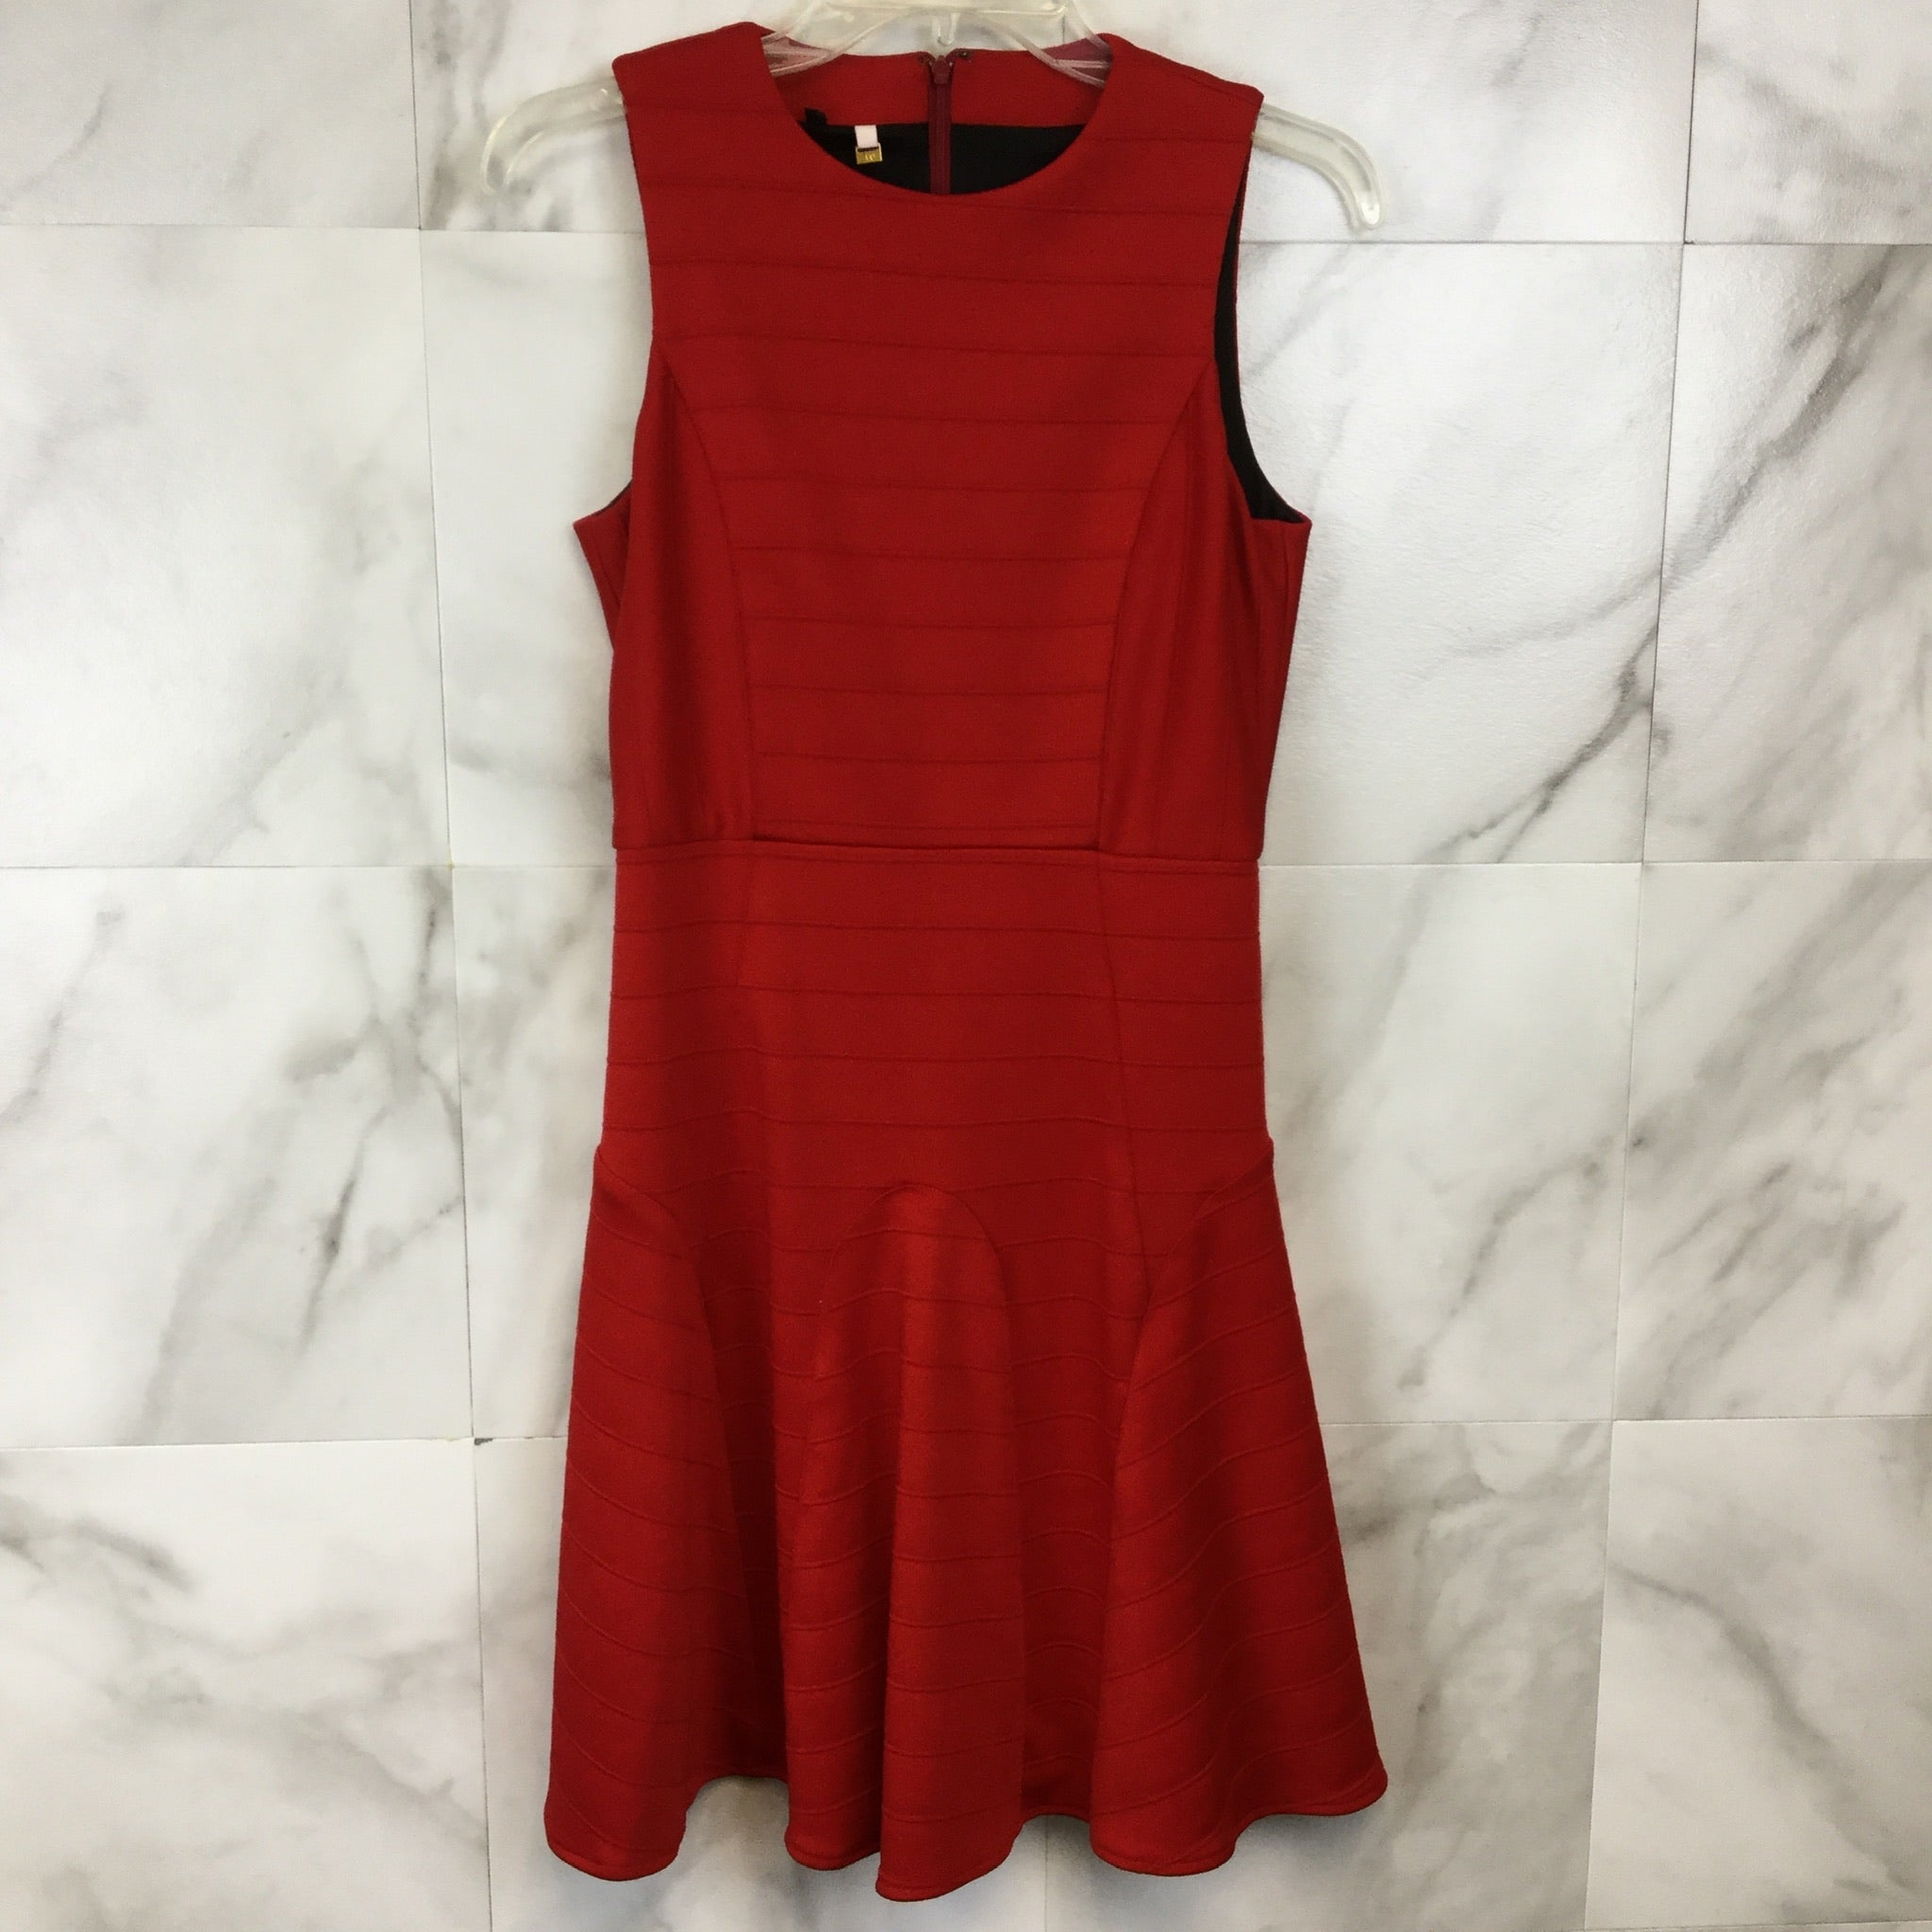 4.collective Sleeveless Pintuck Dress - size 4